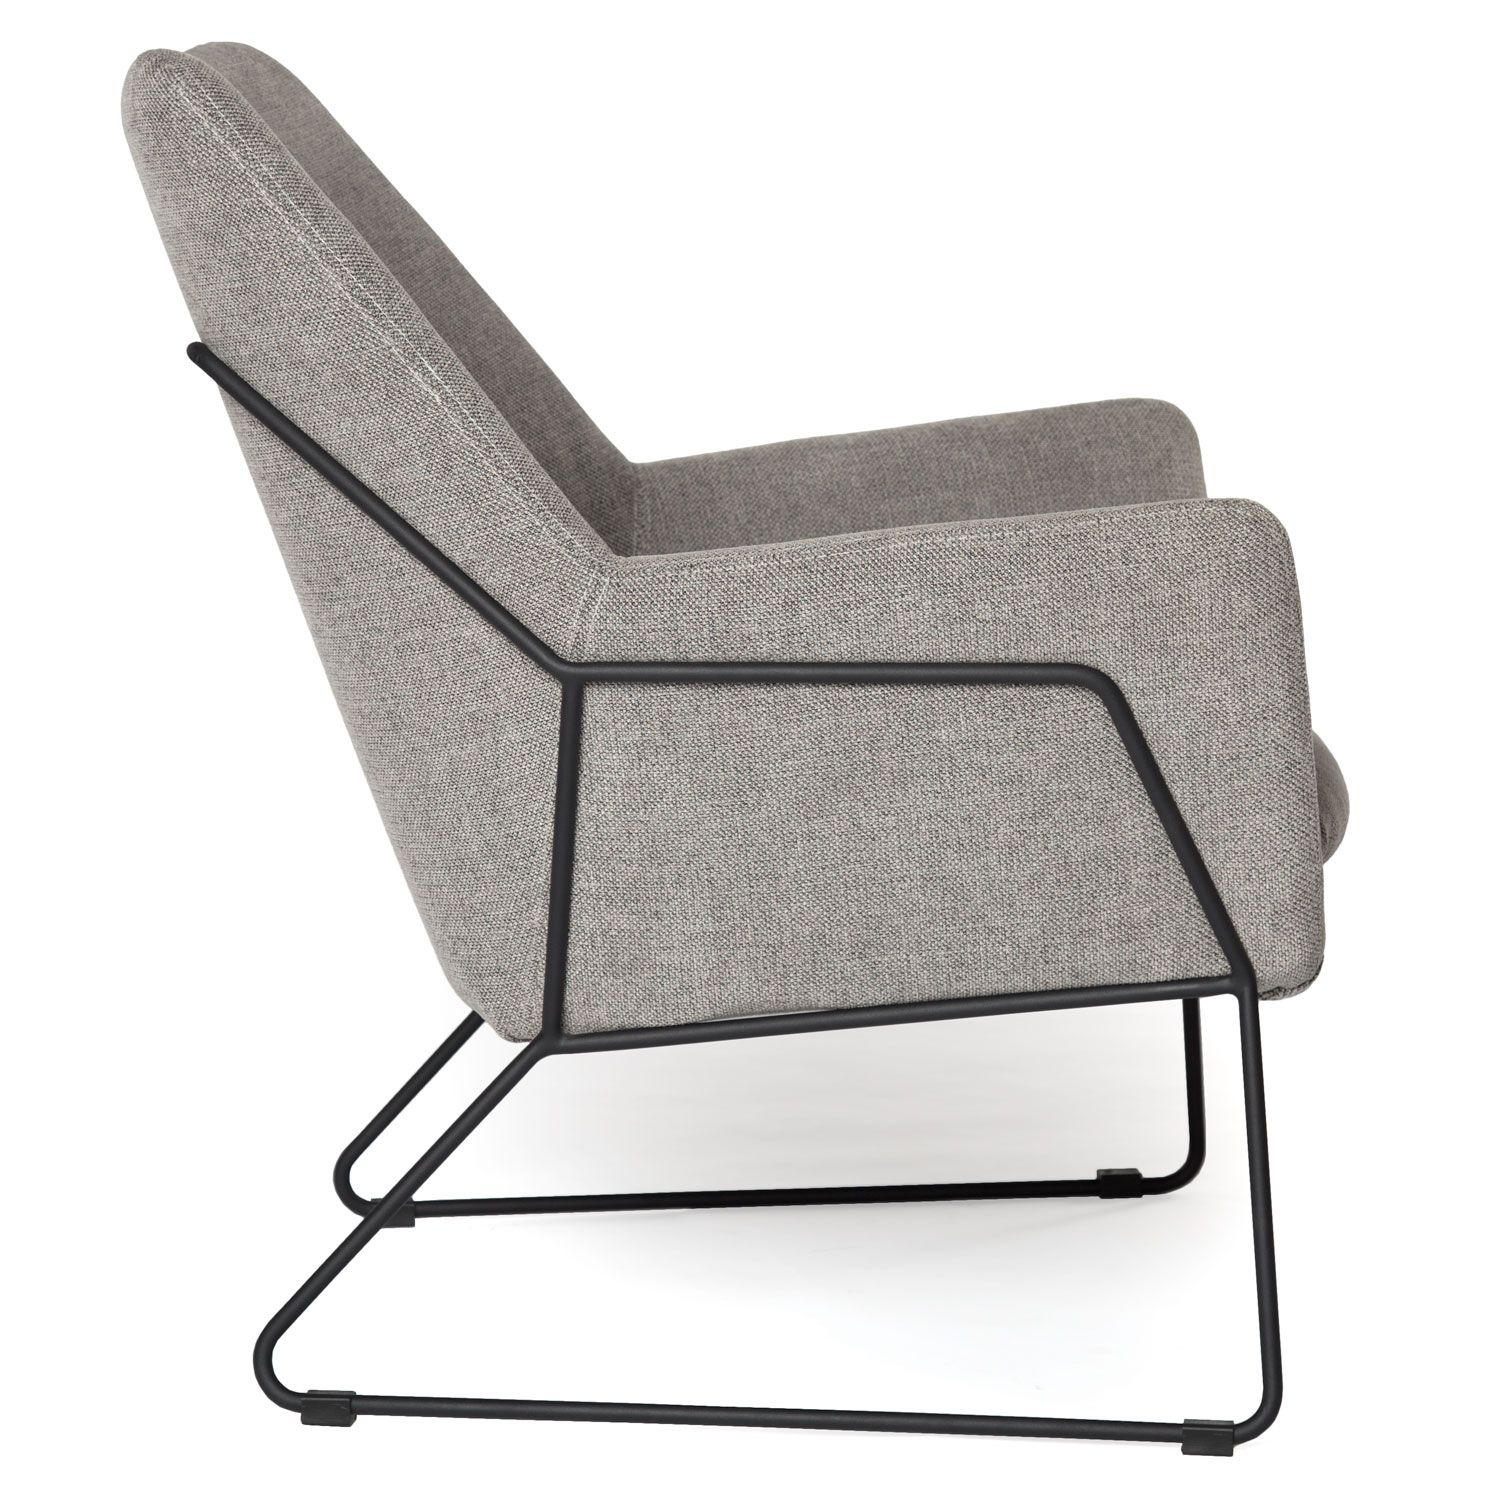 Retro Modern Lounge Chair Light Grey Fabric With Images Retro Lounge Chairs Modern Leather Chair Modern Easy Chair